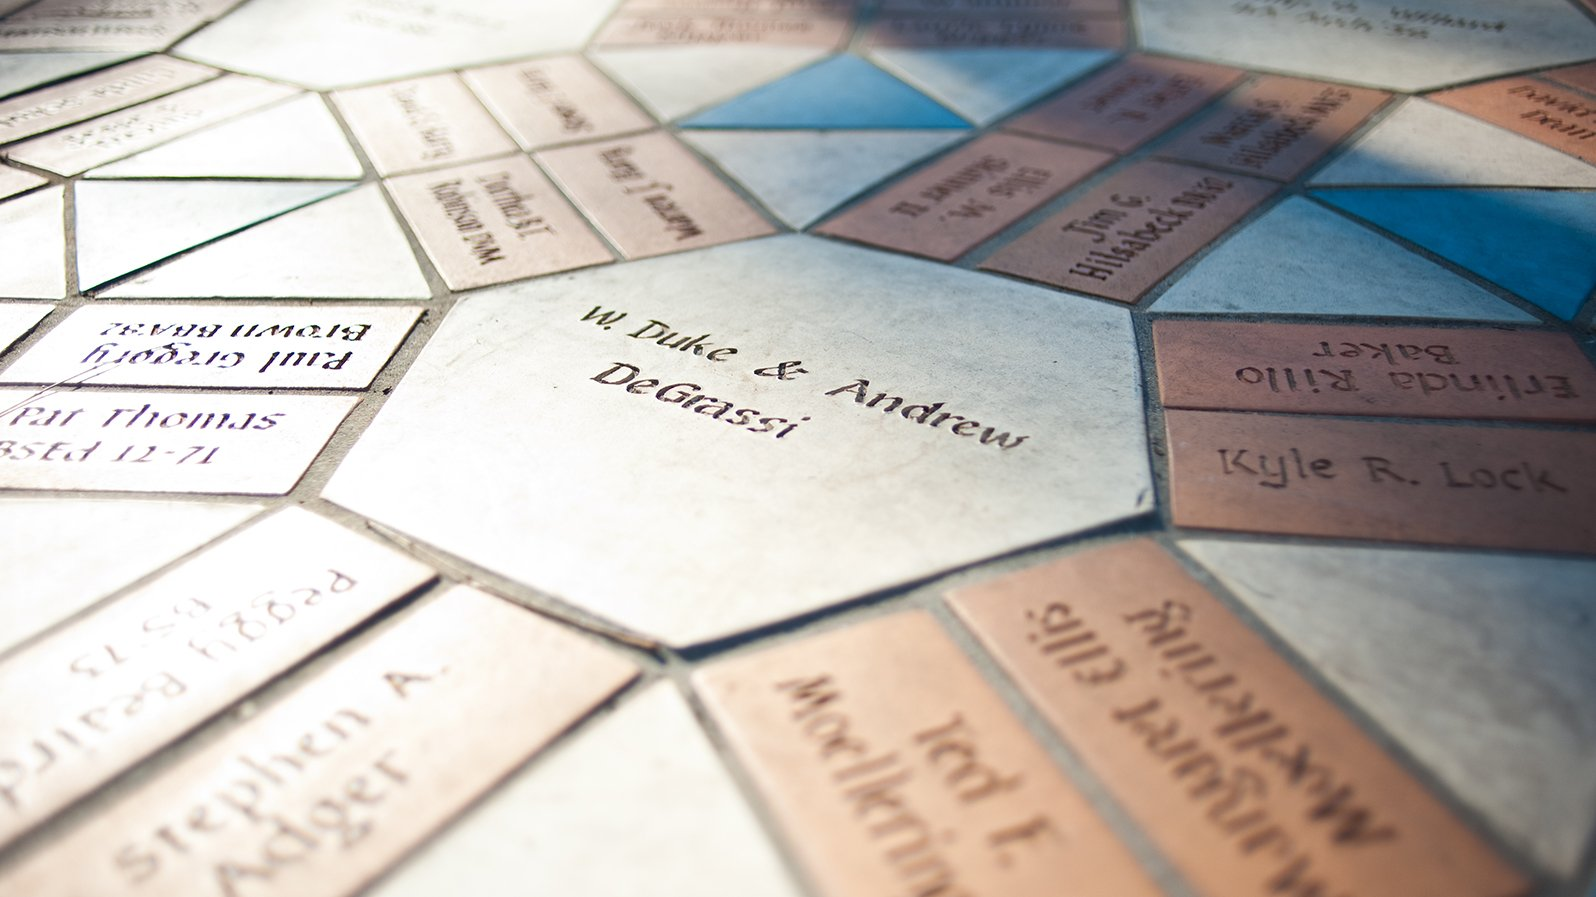 Tiles and Plaques